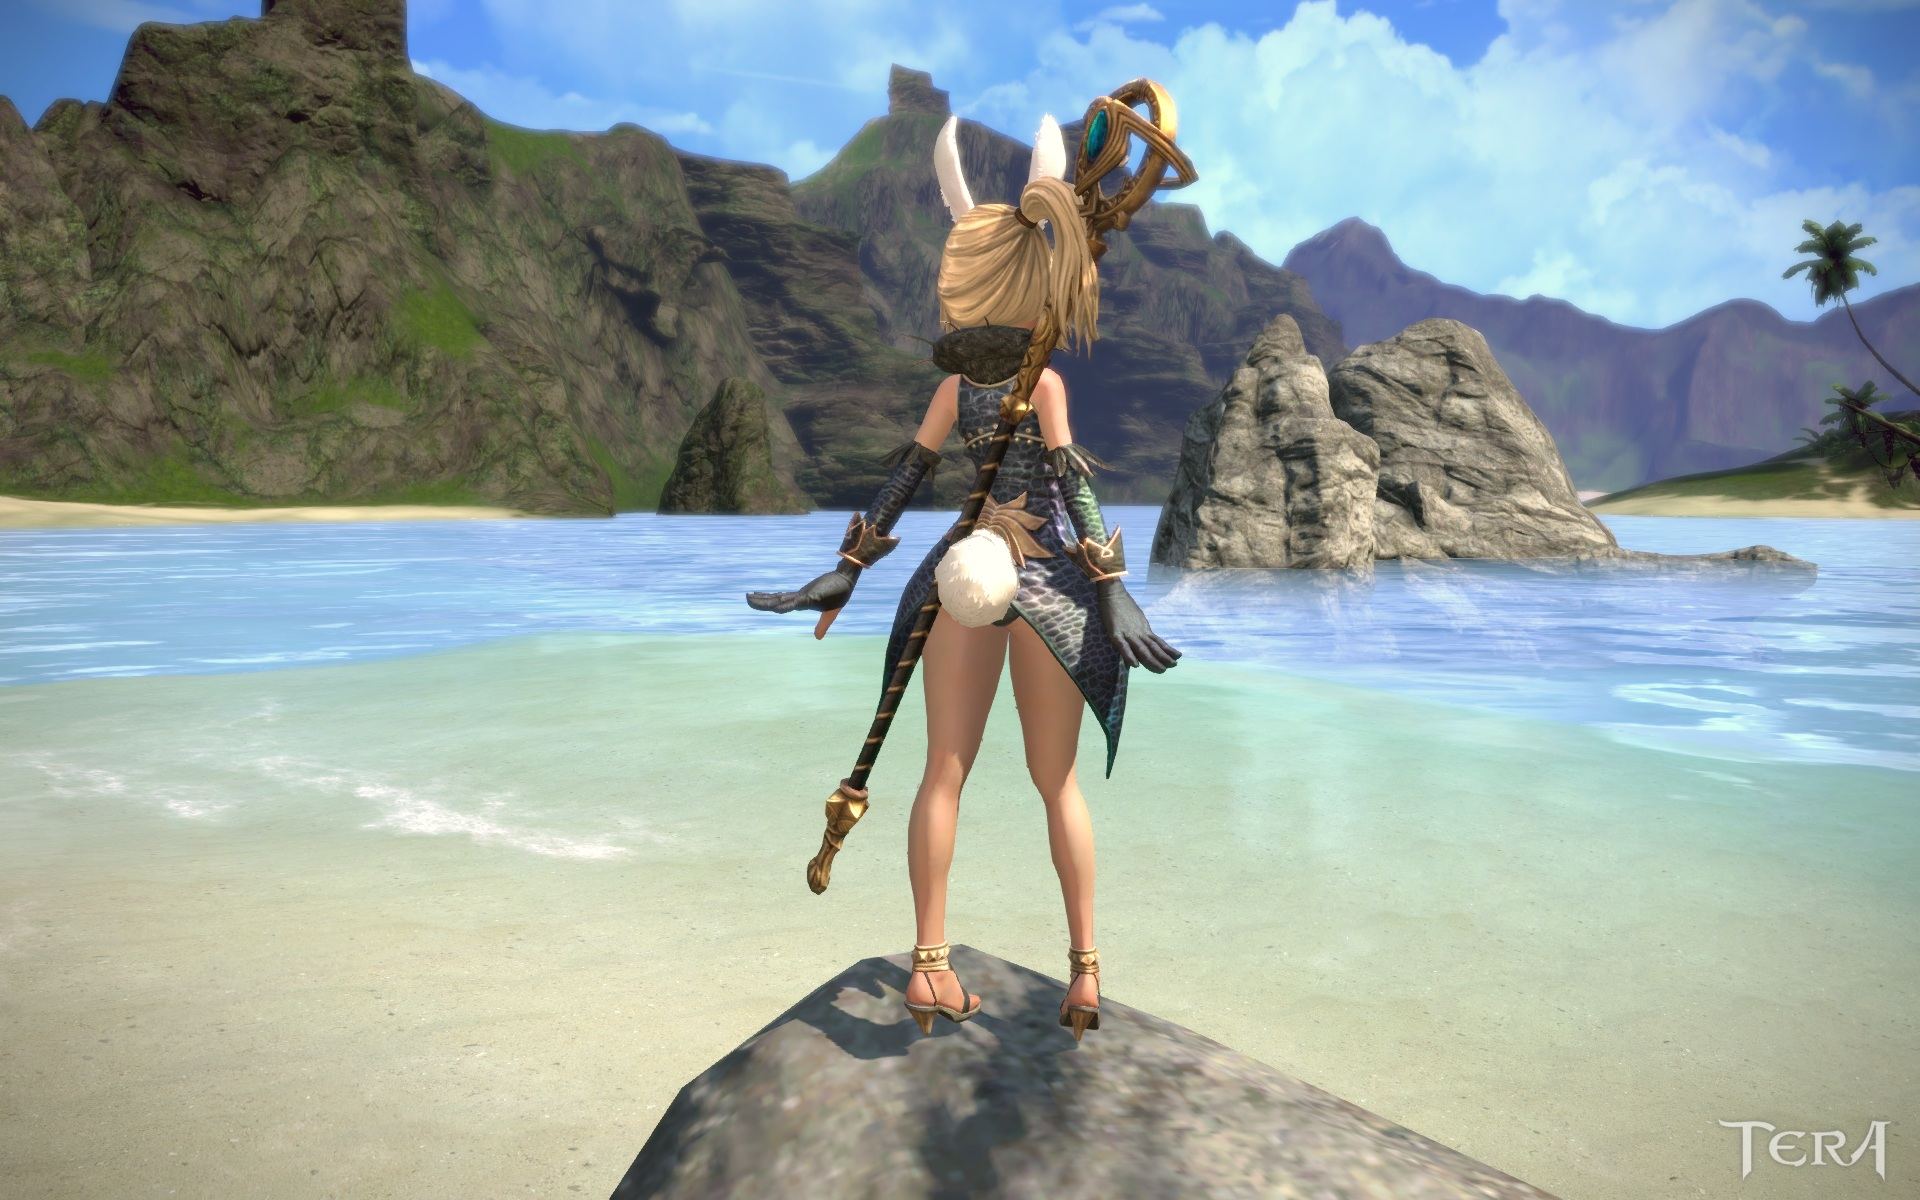 artemicon games opening gameplay trailer experience preview online media removed heres tera